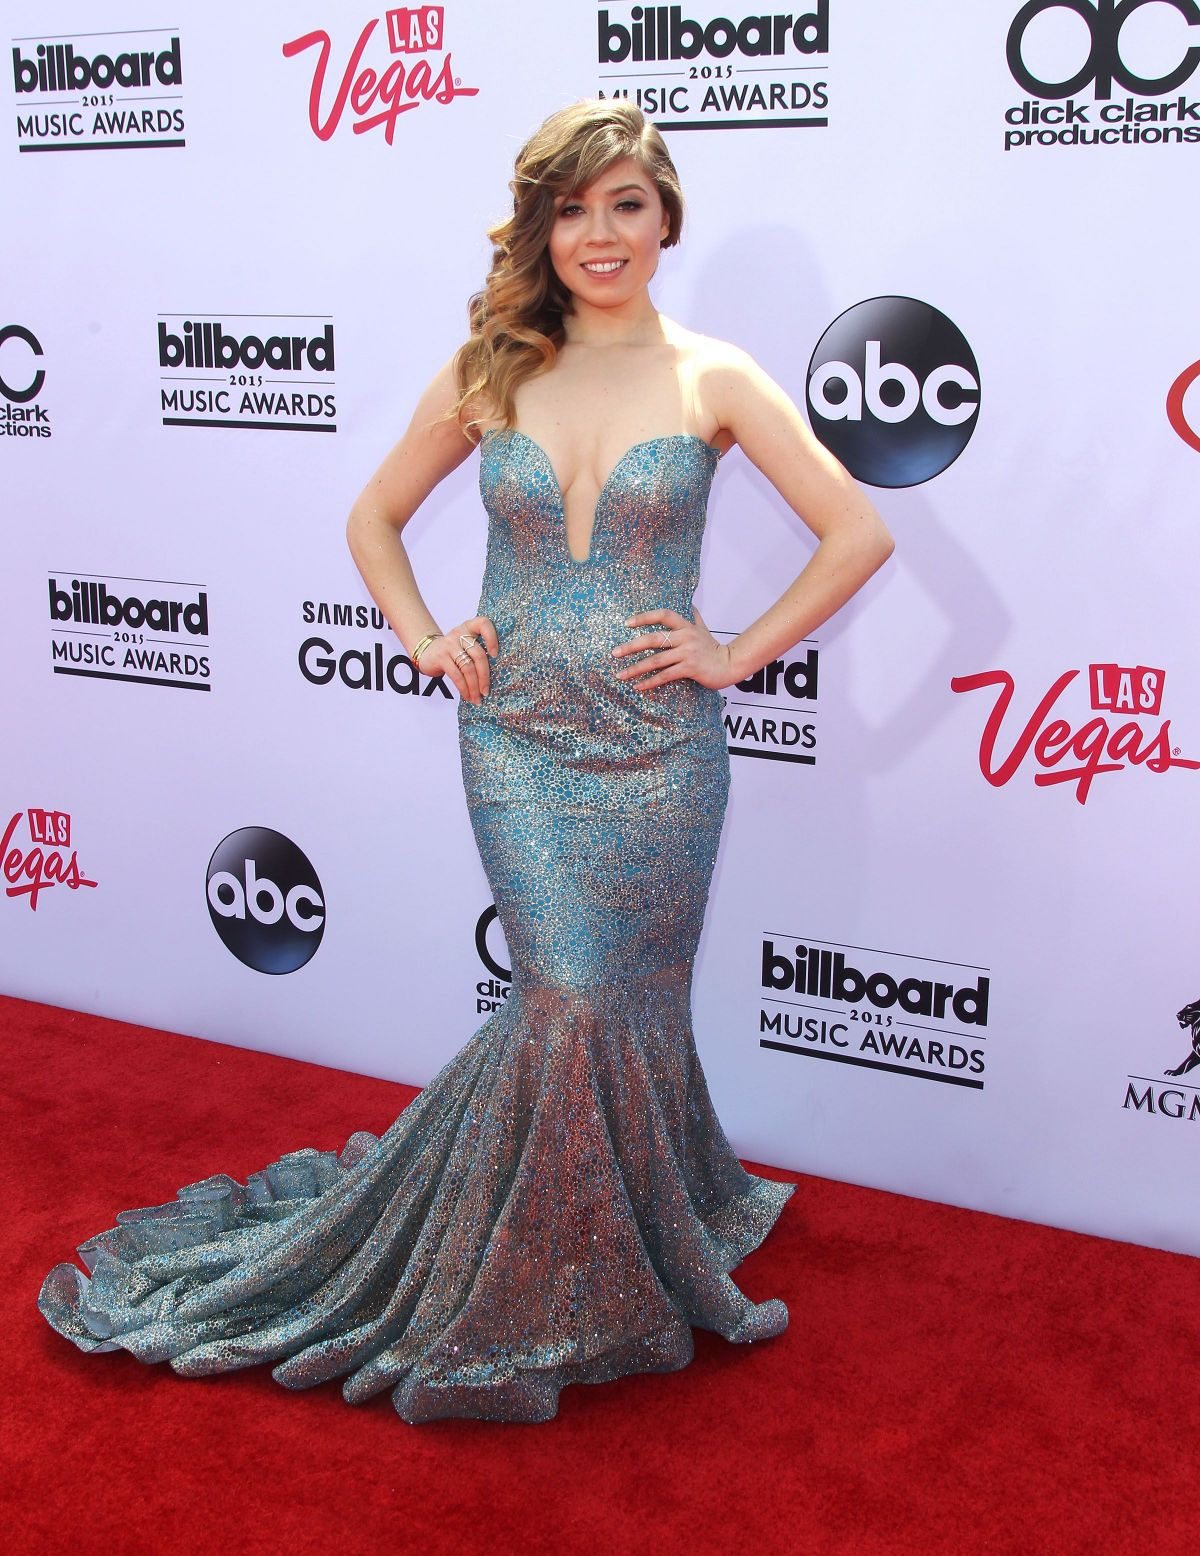 Billboard Music Awards 2016 The Best Hair And Makeup: Jennette McCurdy At 2015 Billboard Music Awards